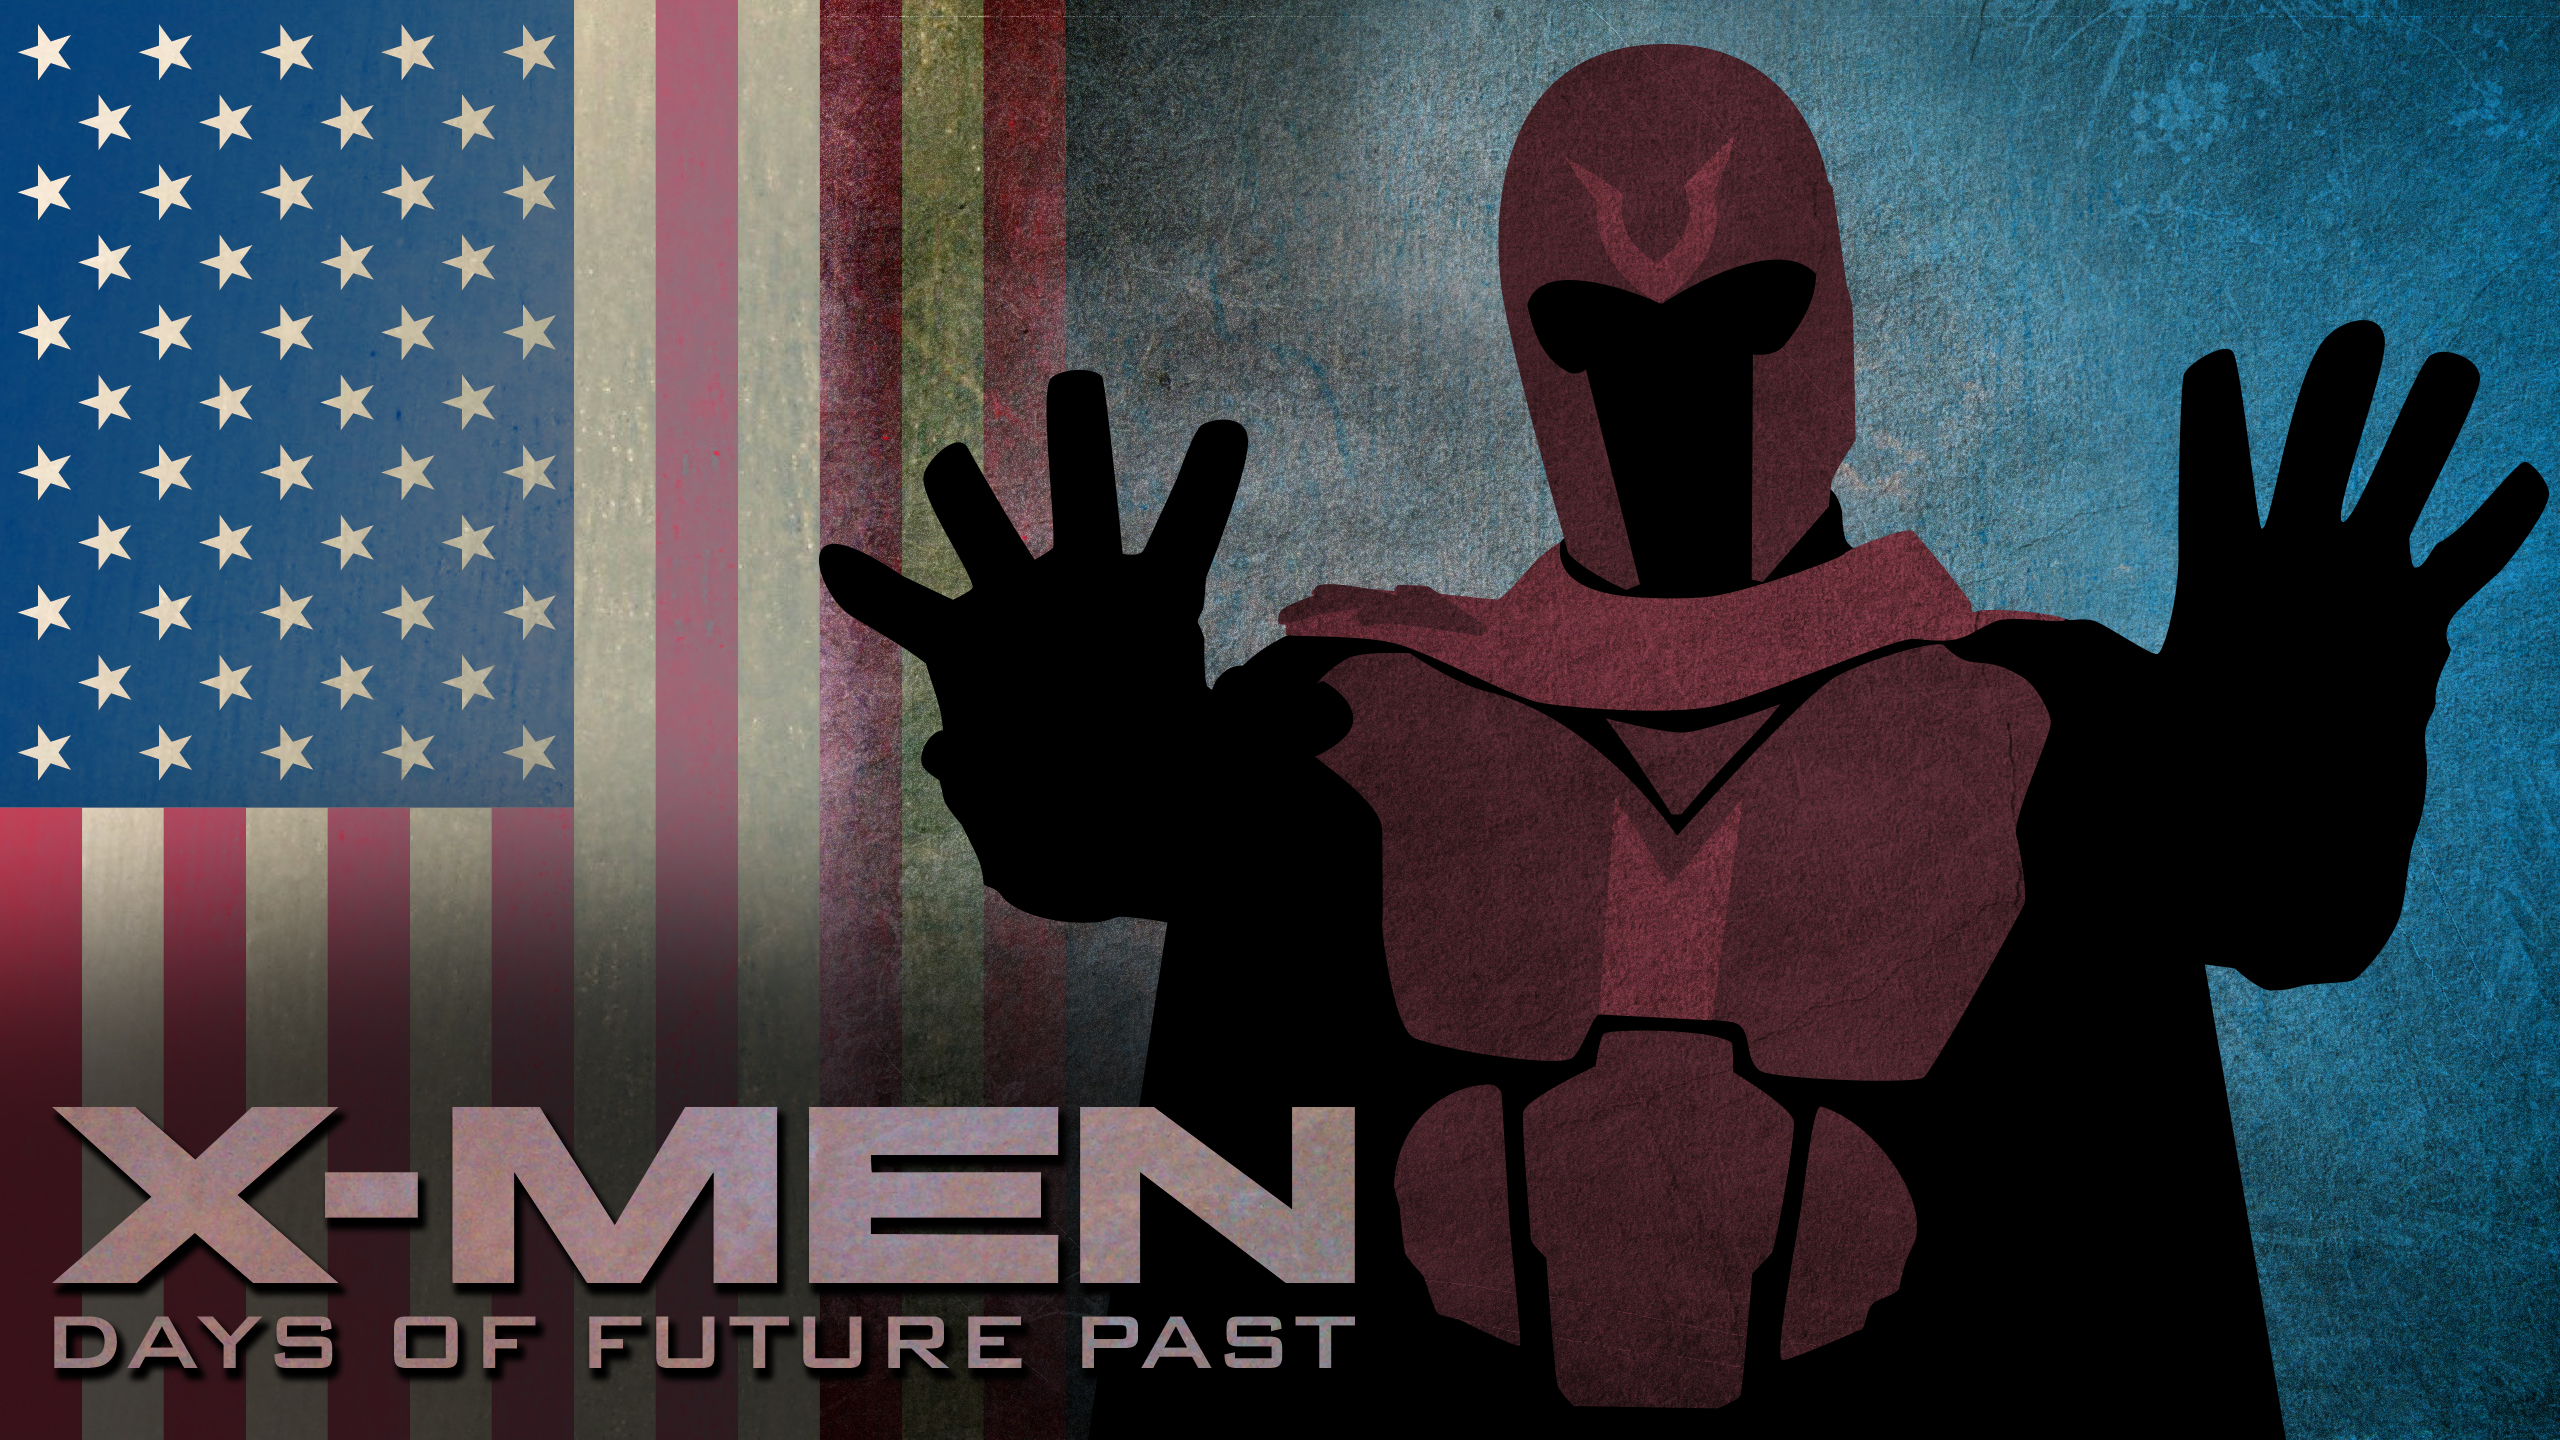 X Men Days Of Future Past Wallpaper: Magneto Wallpaper By M-Kow On